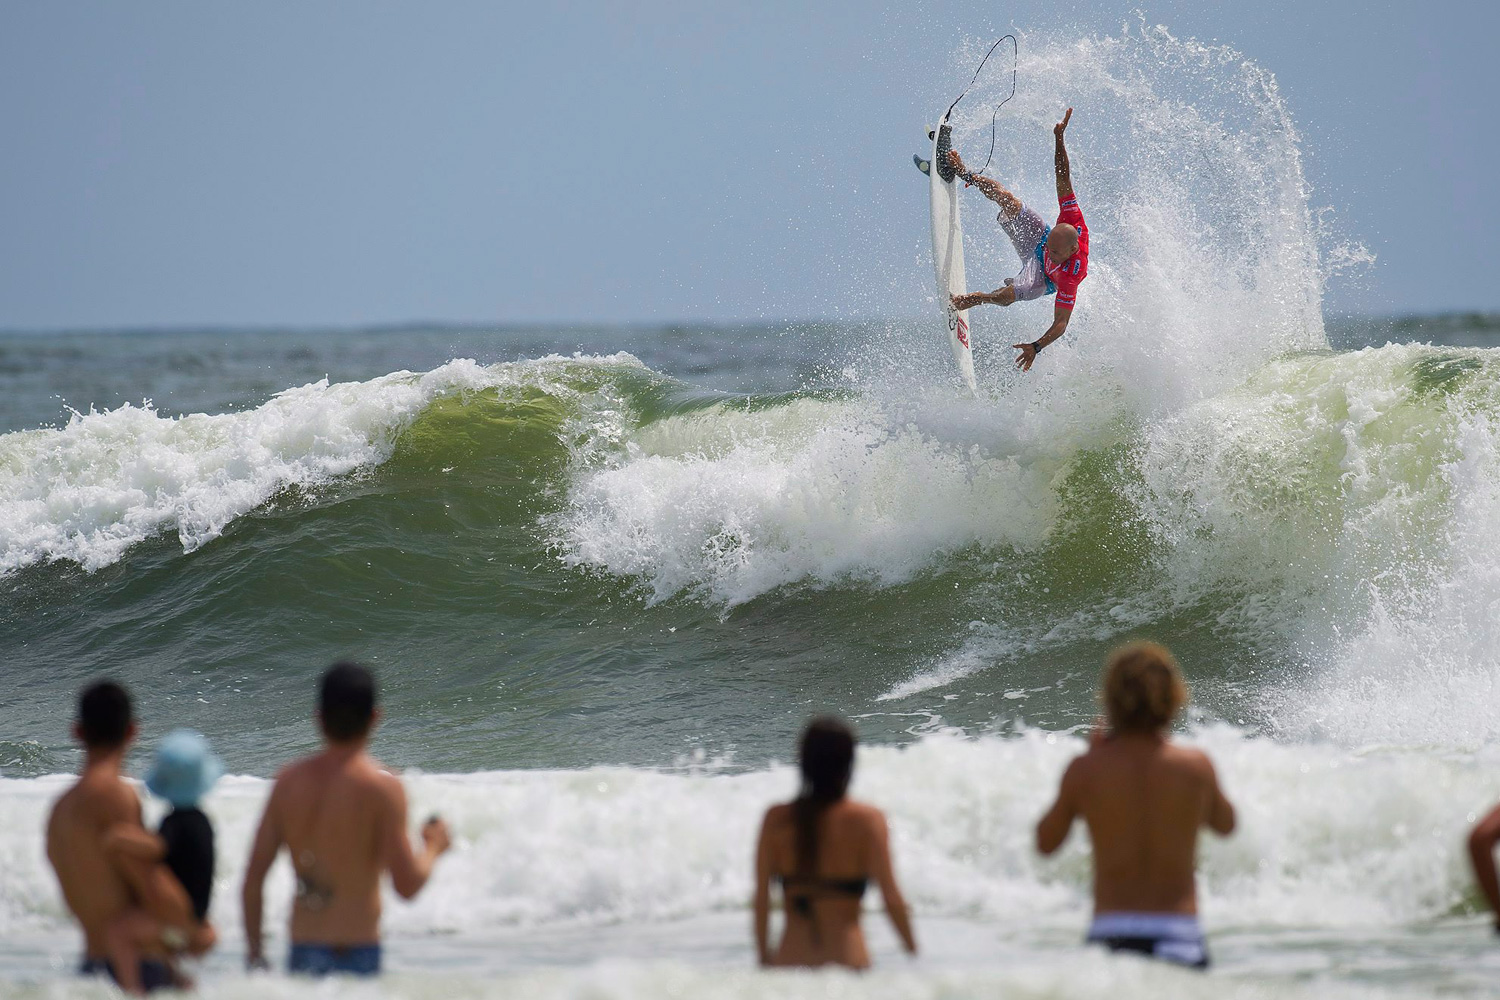 Feb. 27, 2012. Surfer Kelly Slater of the U.S. is seen dominating the famed Snapper Rocks break at the Gold Coast, Australia, netting the highest heat score of the morning a 16.36 (out of 20.00) to advance into round four.